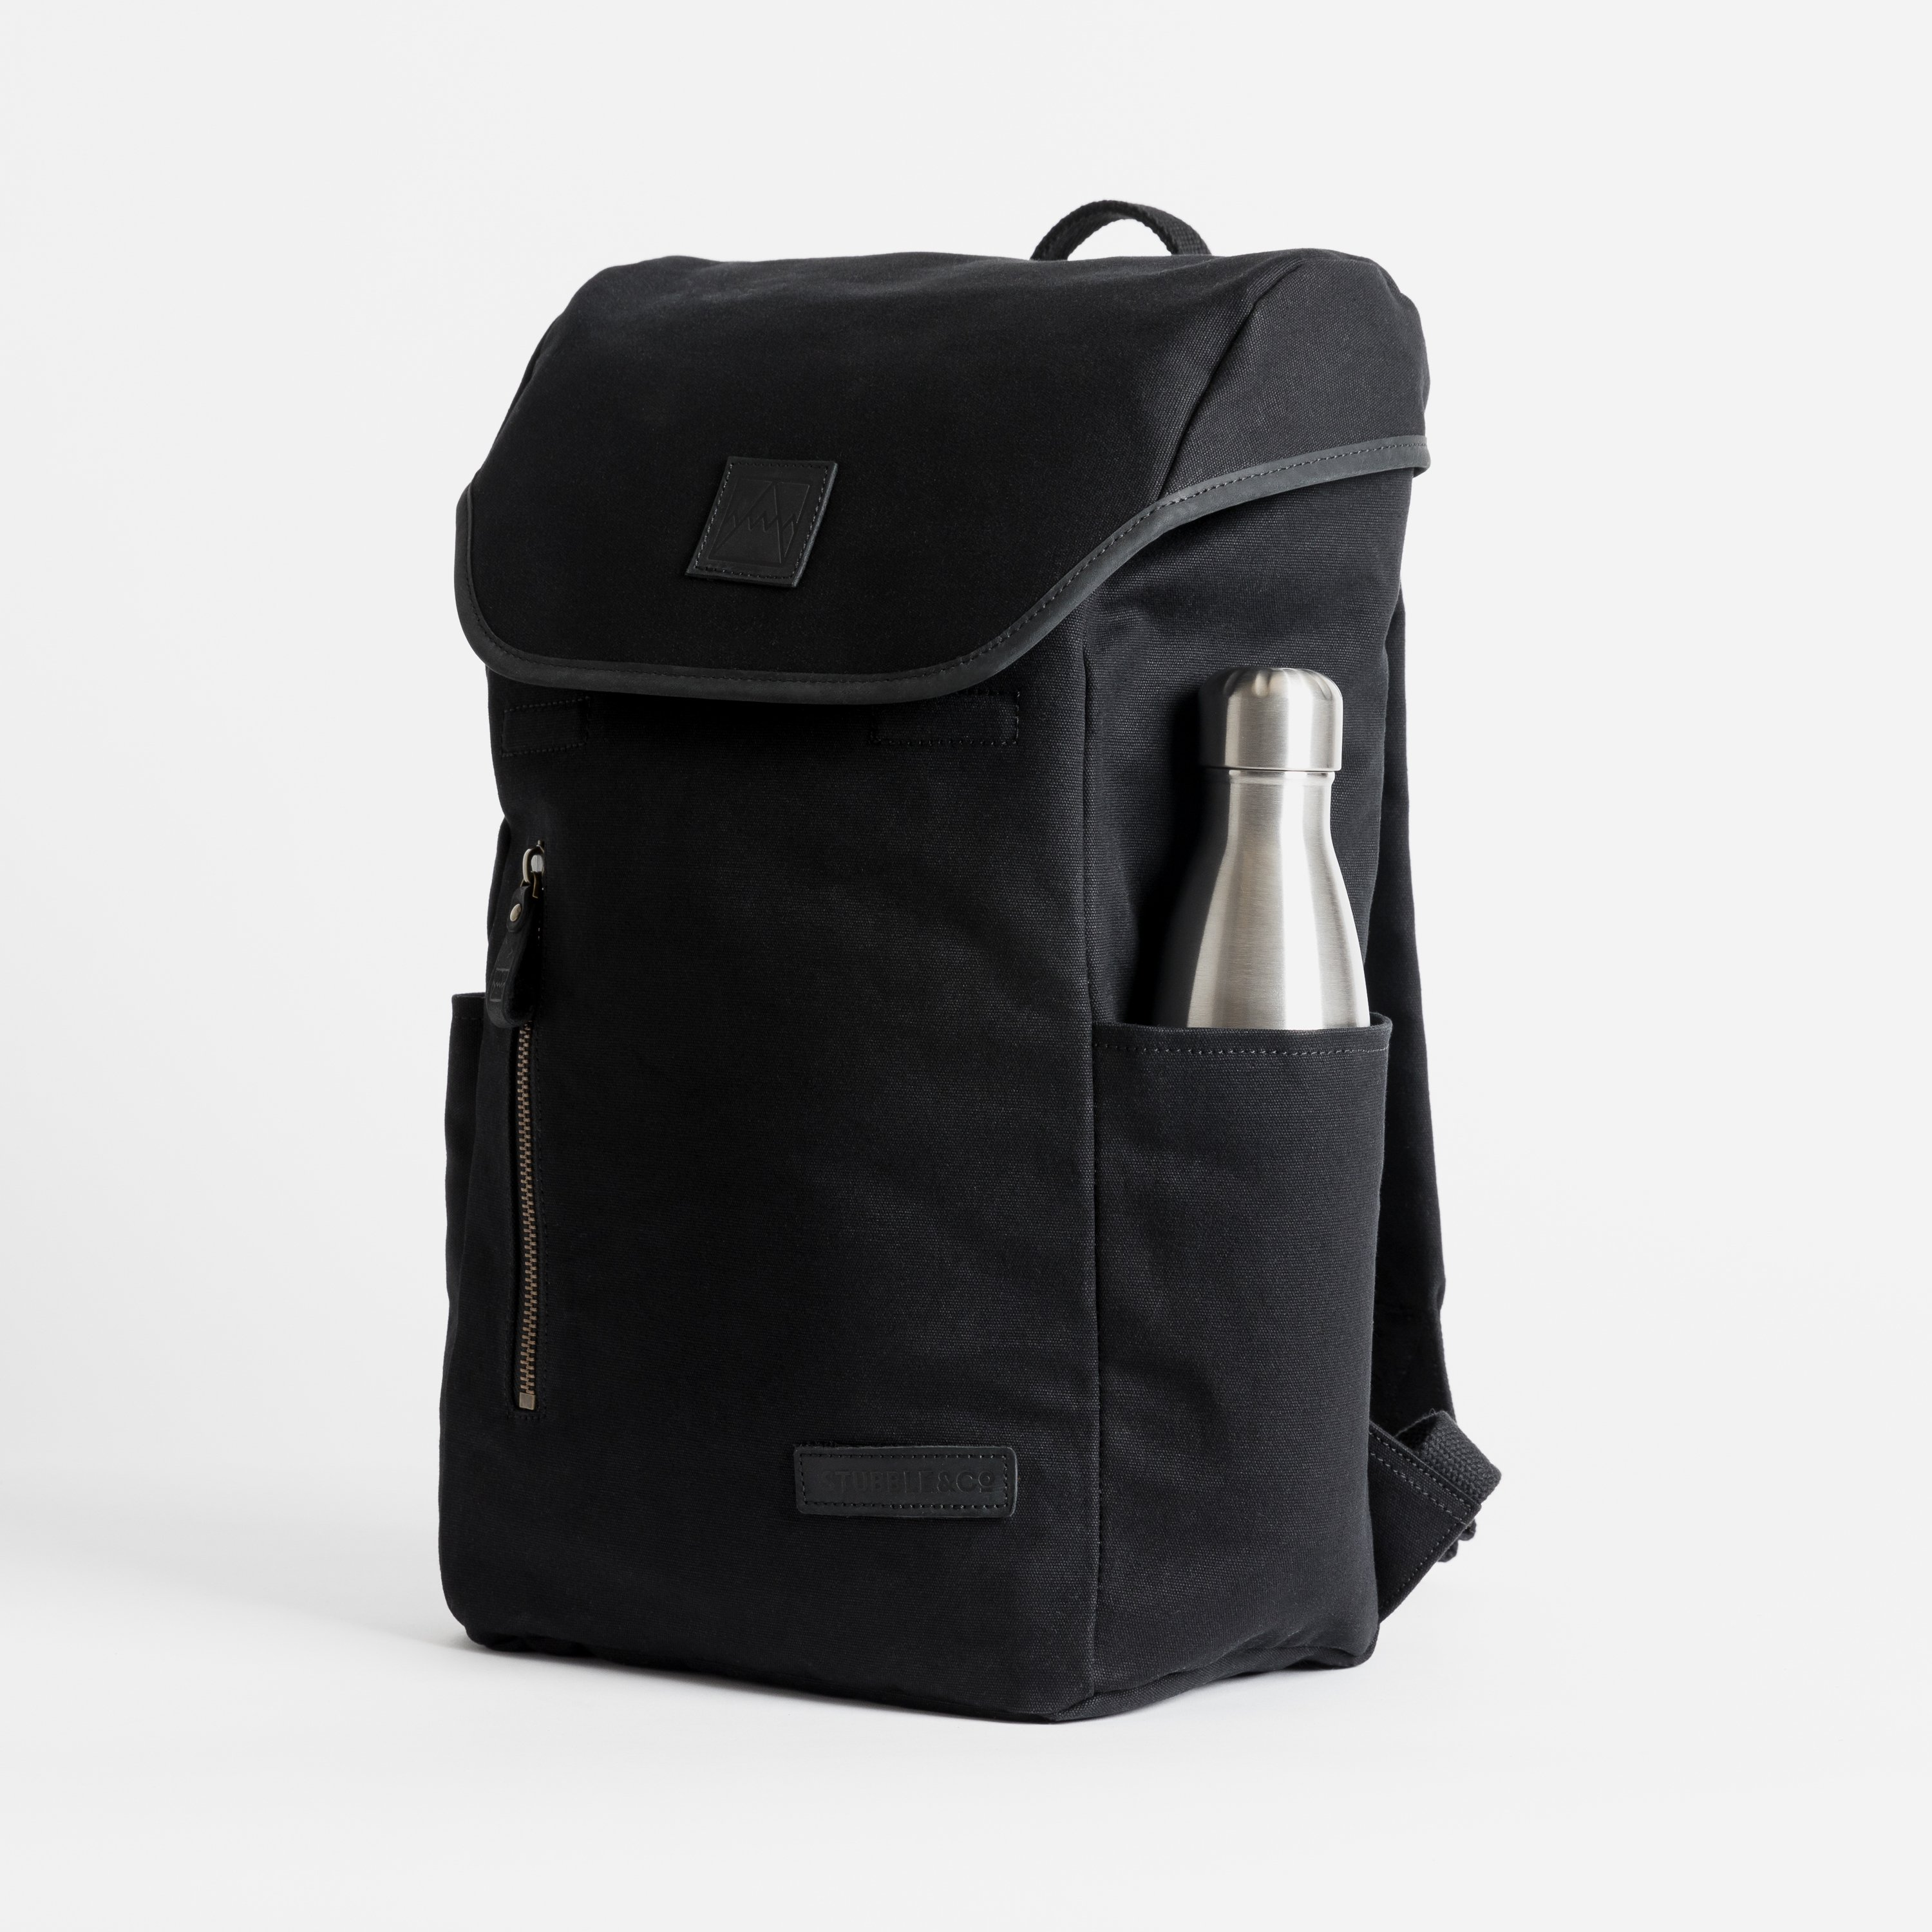 """The Backpack. Premium Waterproofed Canvas and Leather. 15"""" Laptop Pocket., Black"""